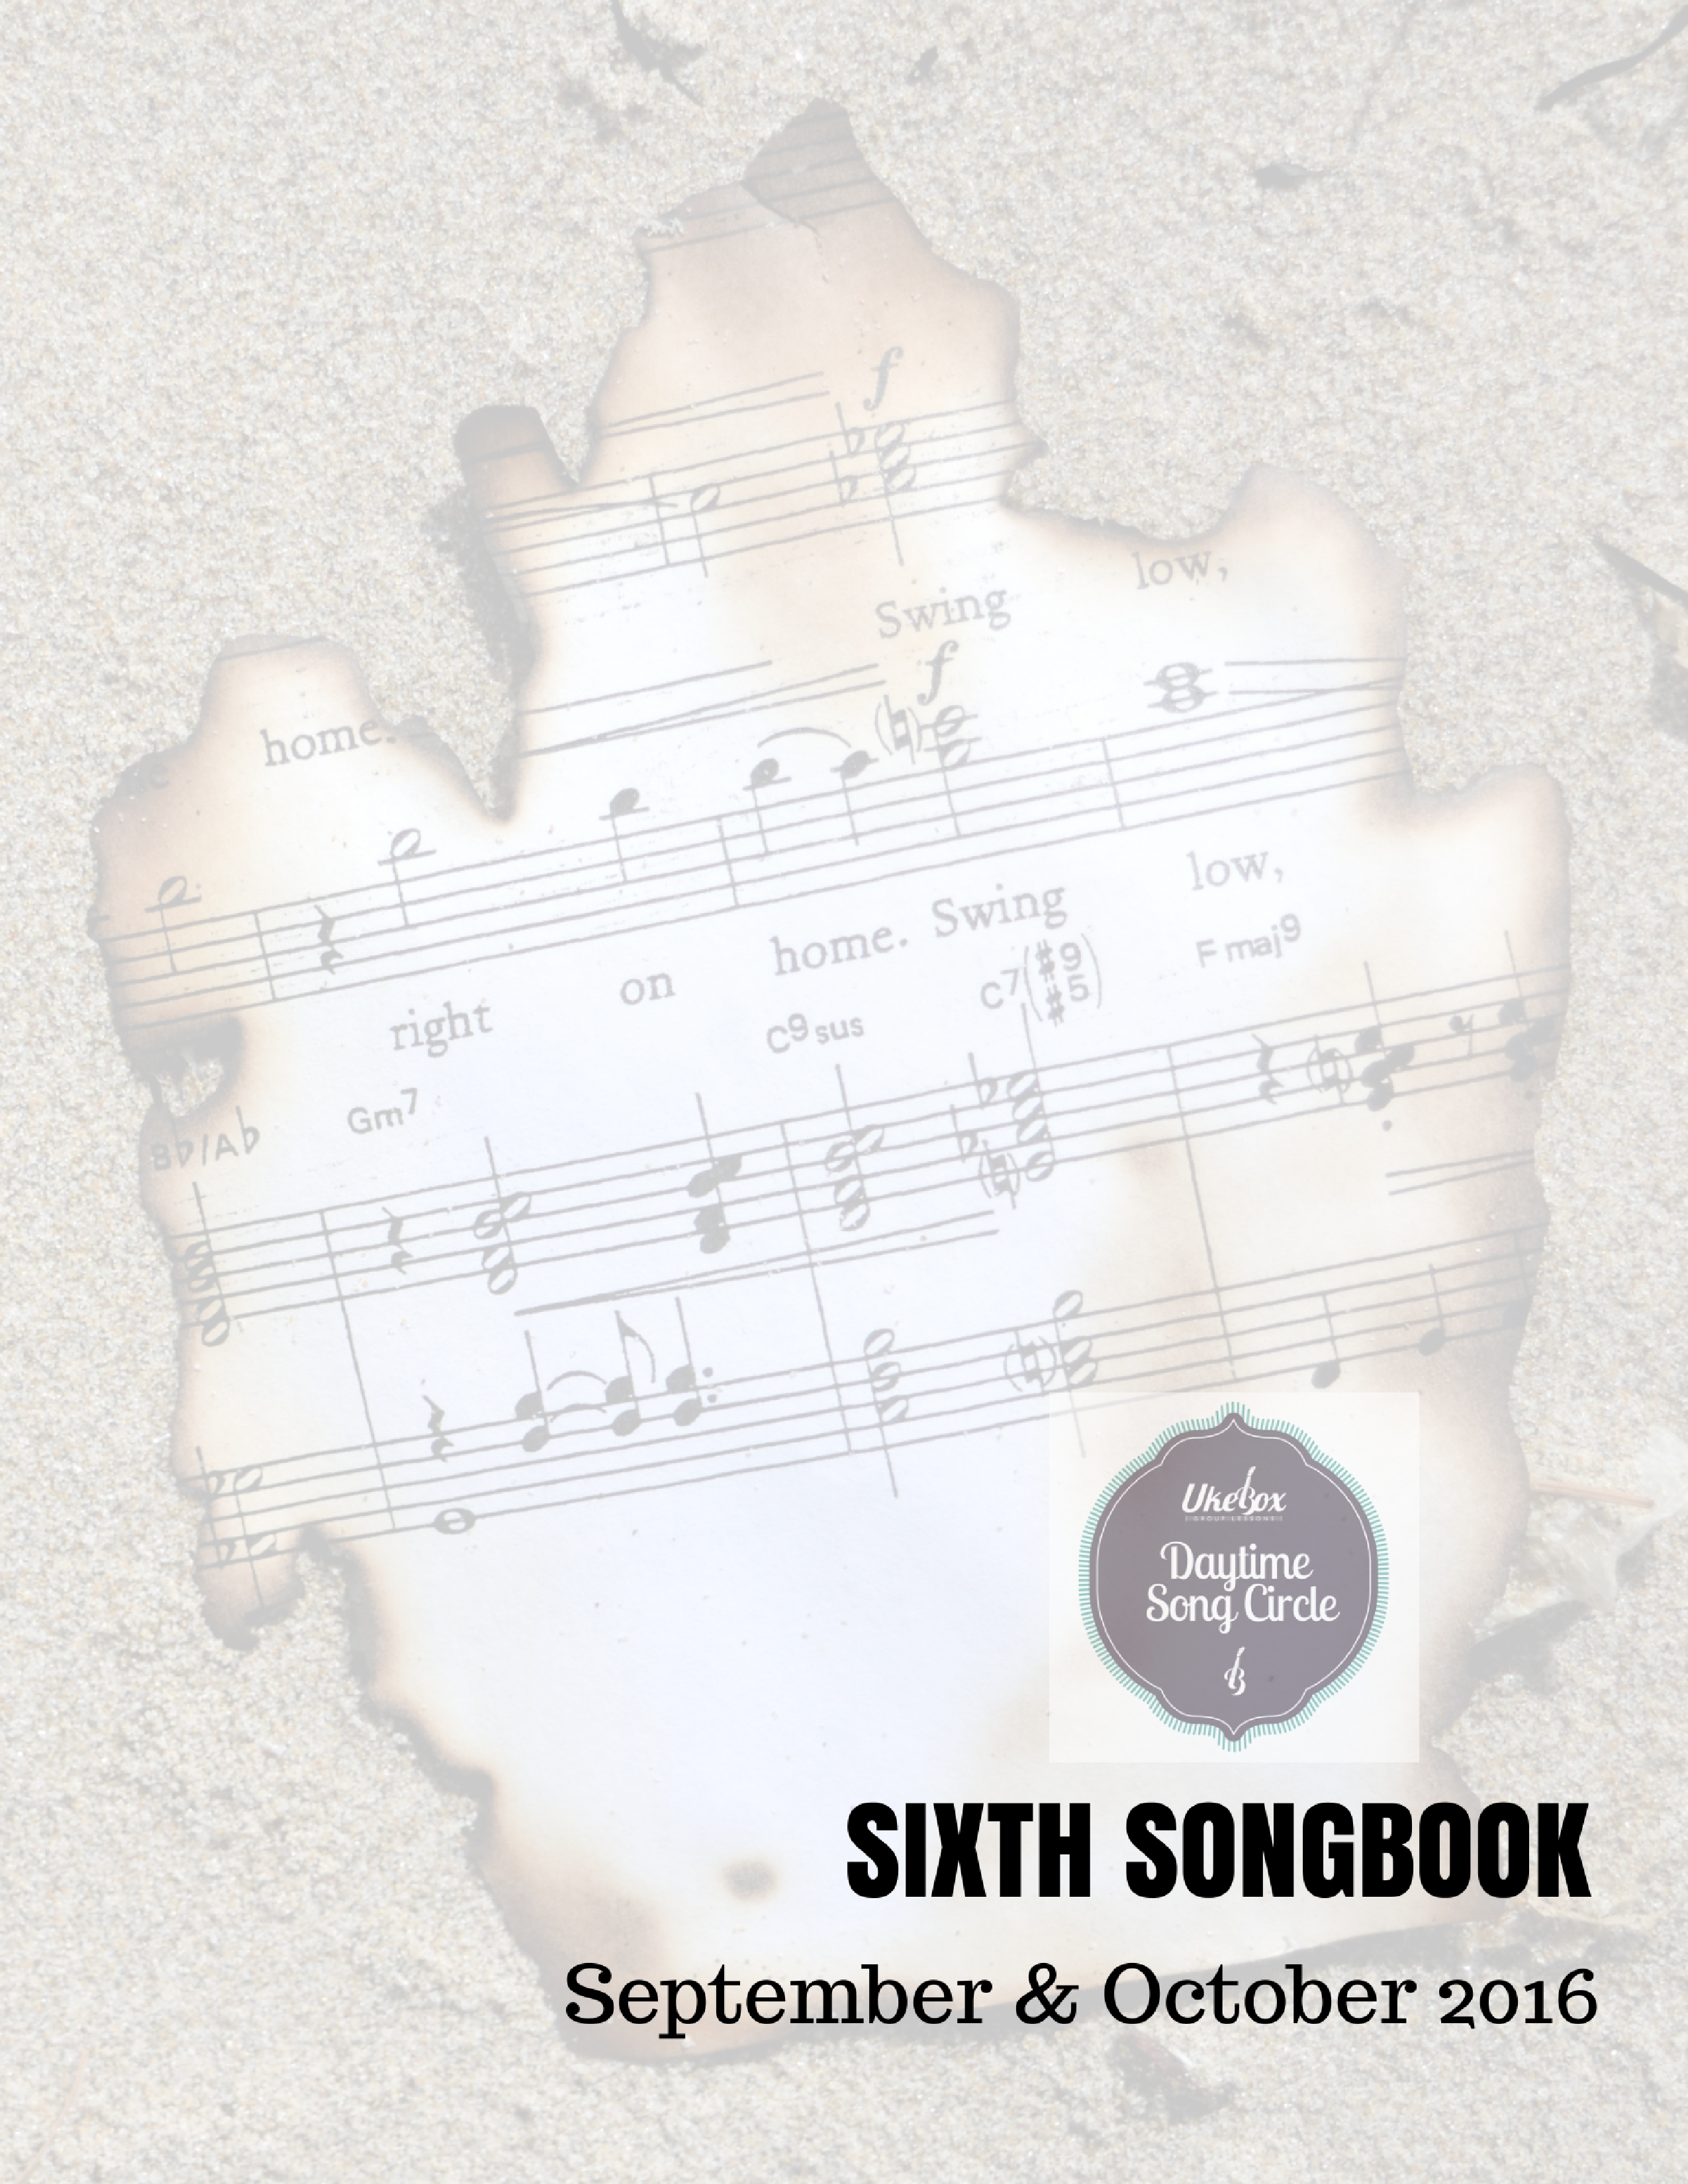 Songcircle Sixth Songbook Sept Oct 2016